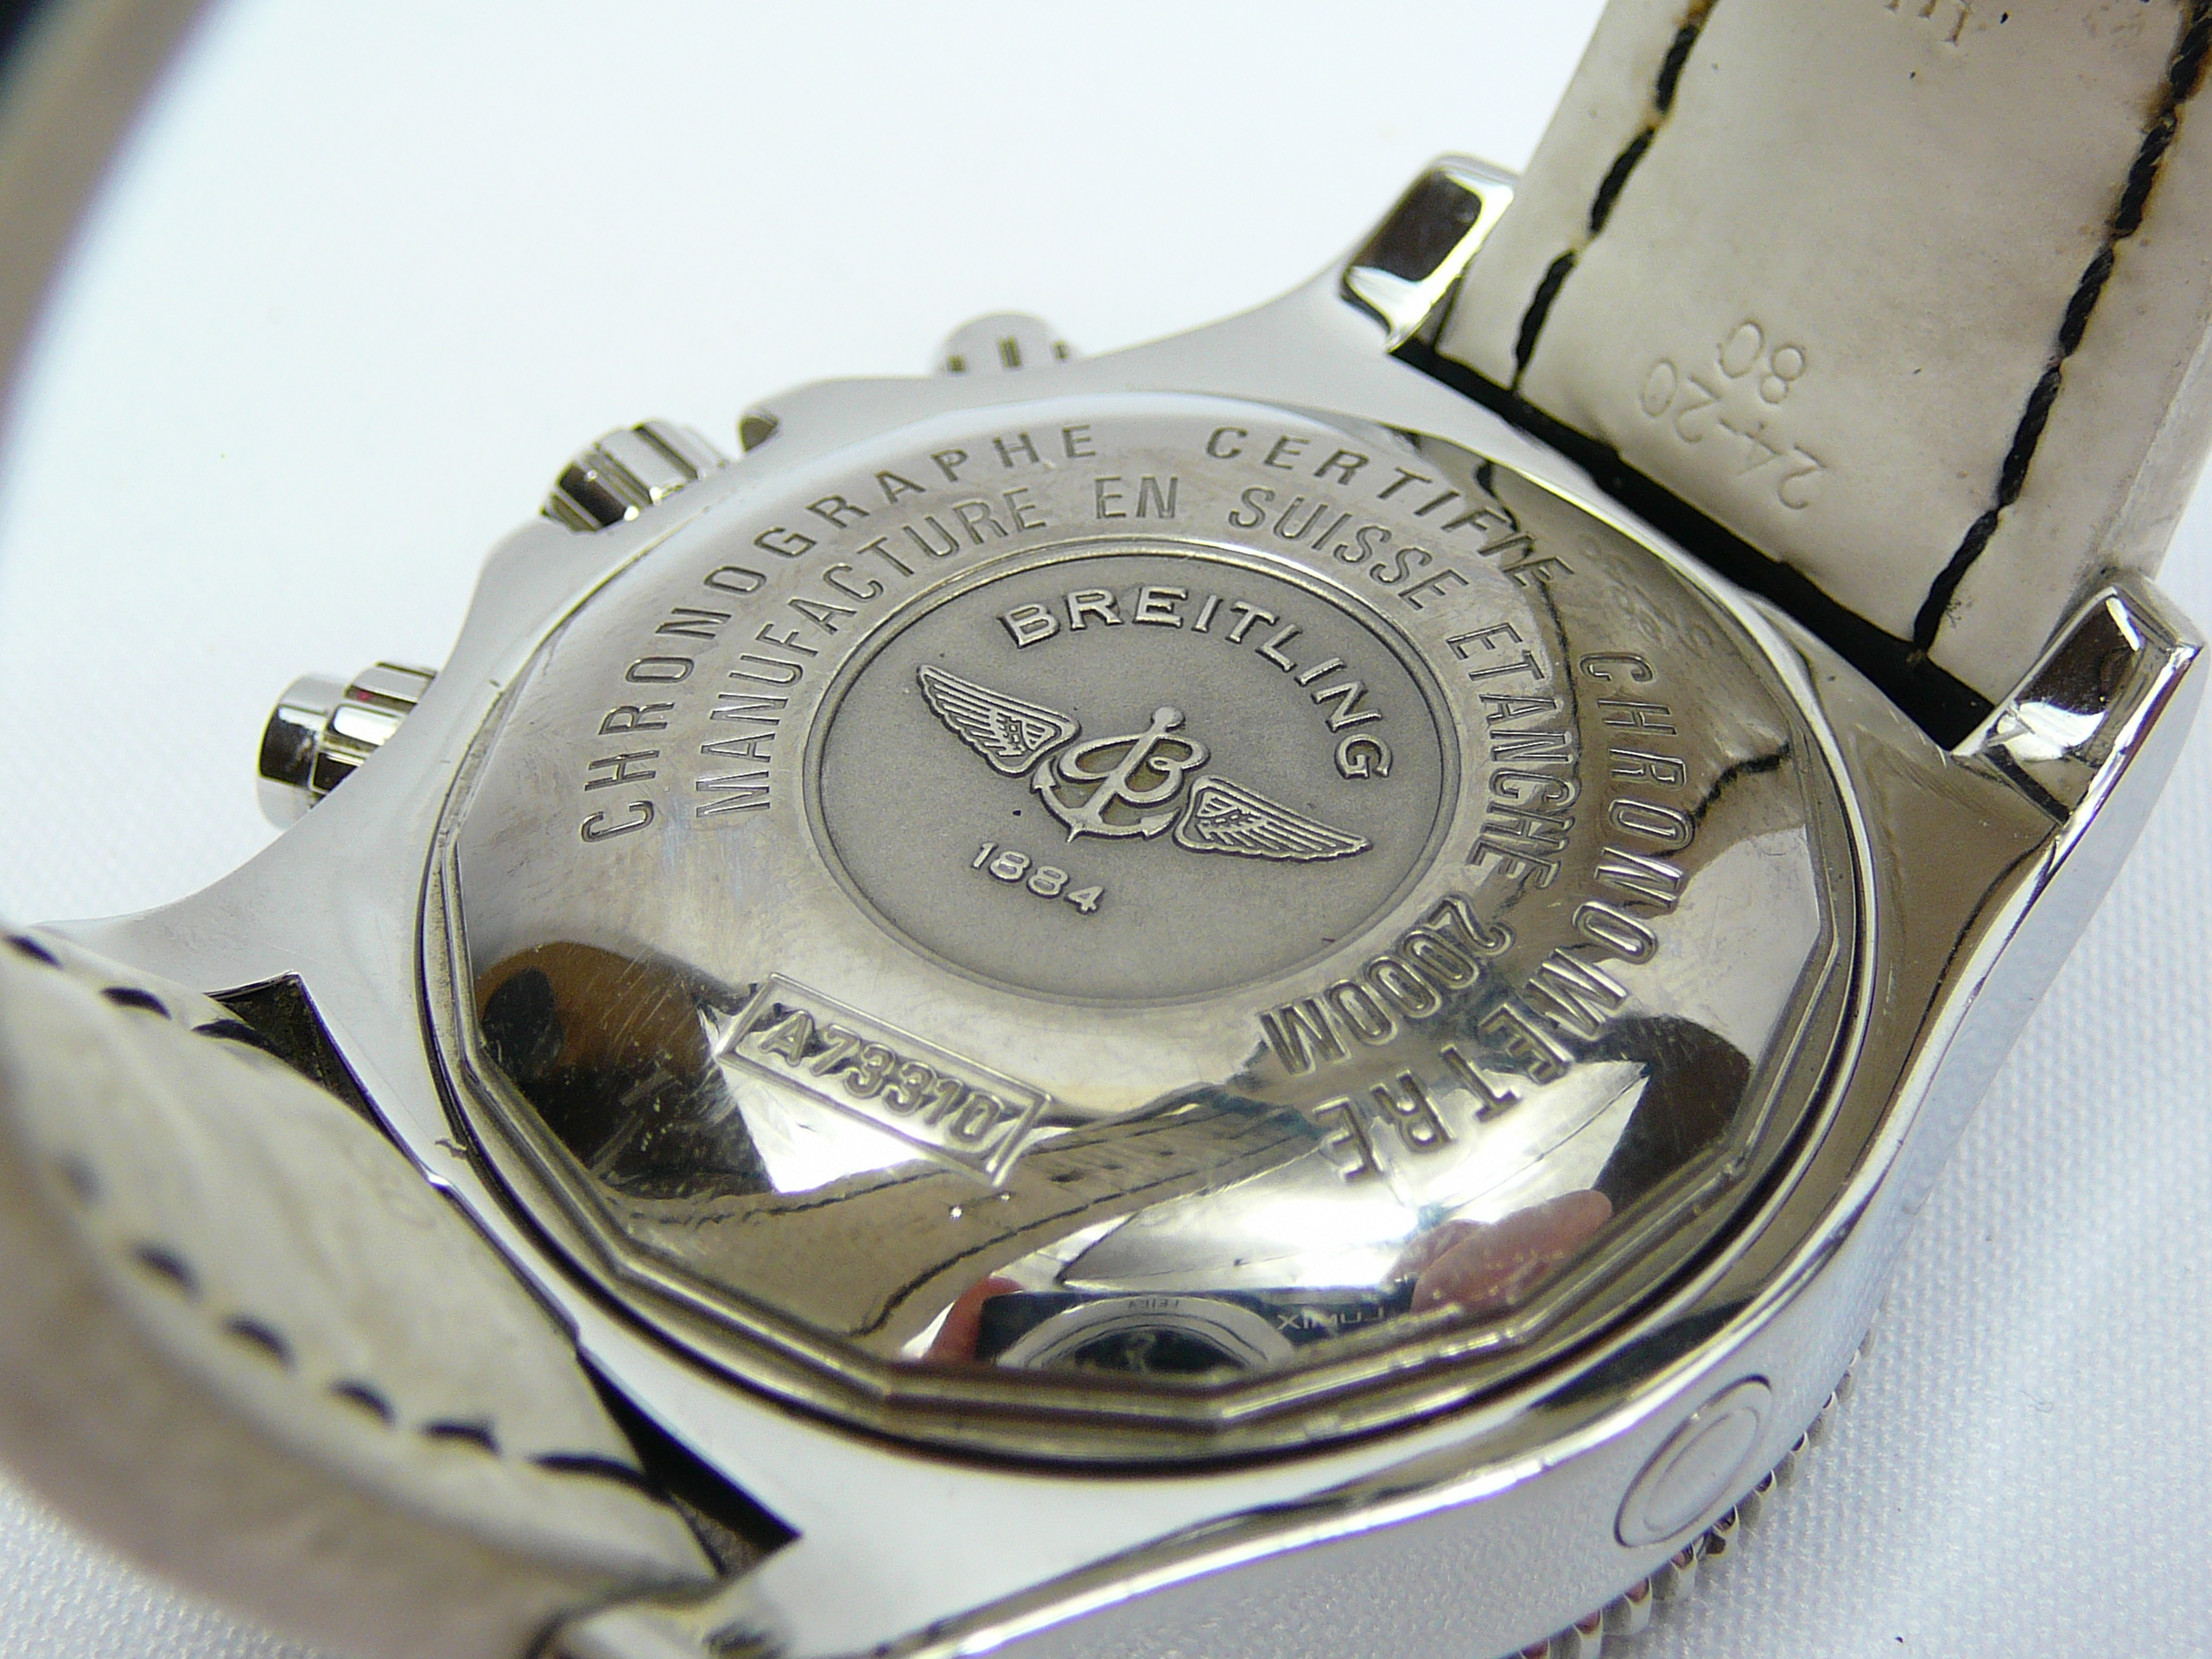 Gents Breitling Wrist Watch - Image 4 of 5